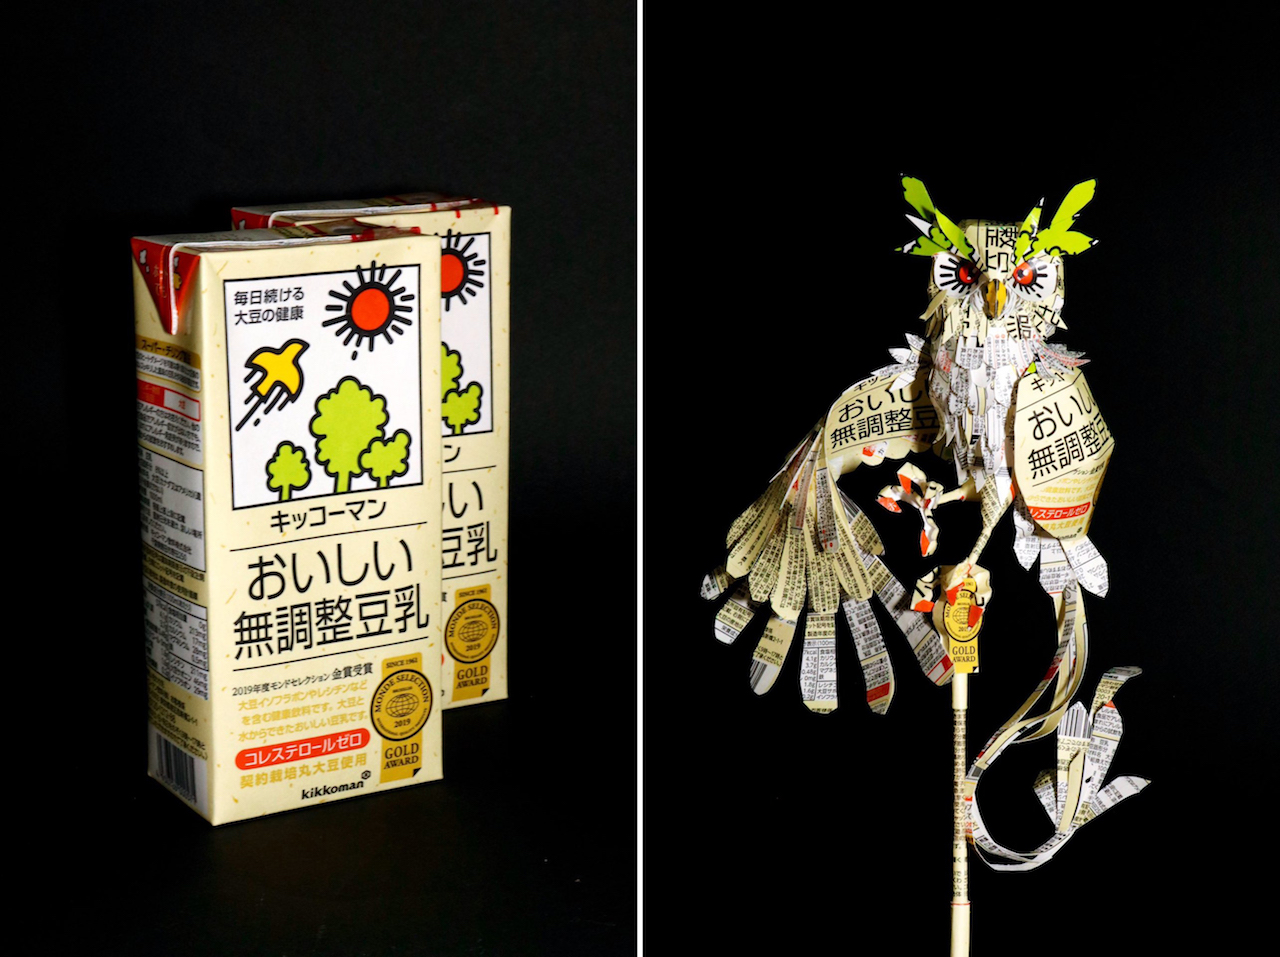 Product Packaging Turned Into Art - 9